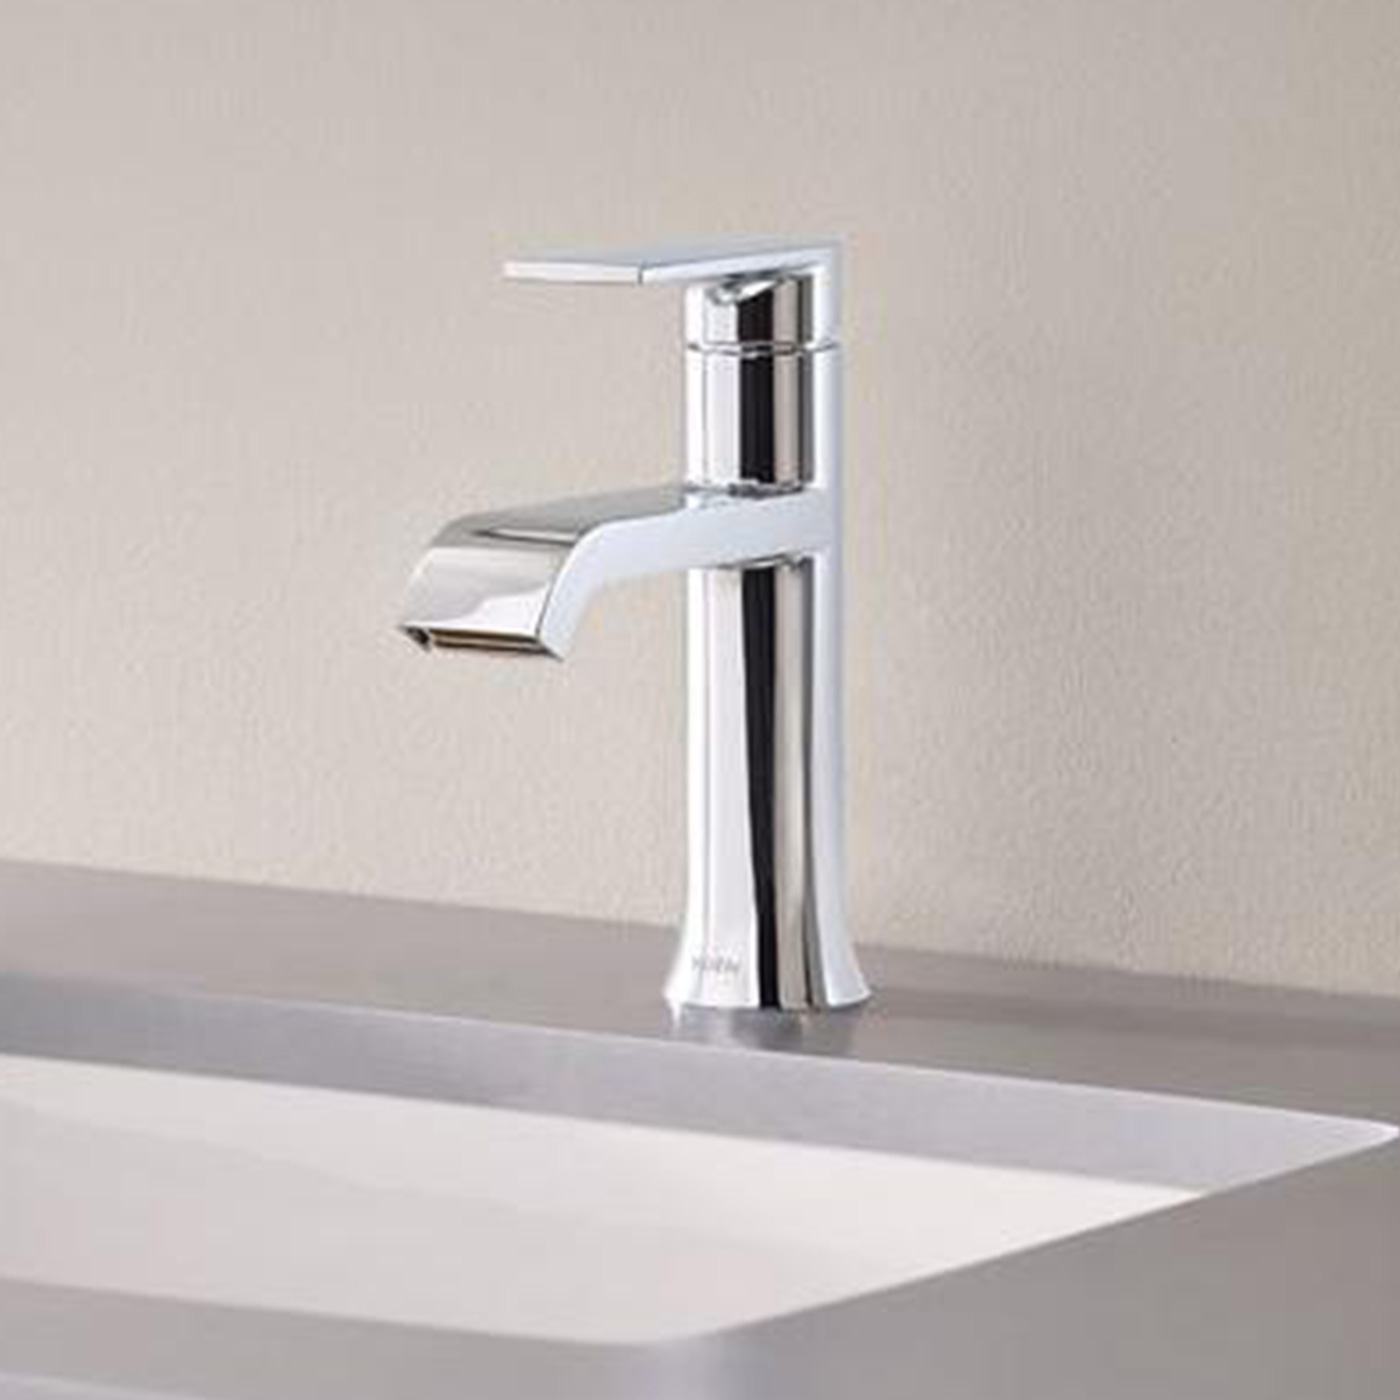 faucet faucets the handle n at bathroom home bath single deckplate by b depot sink style no shop